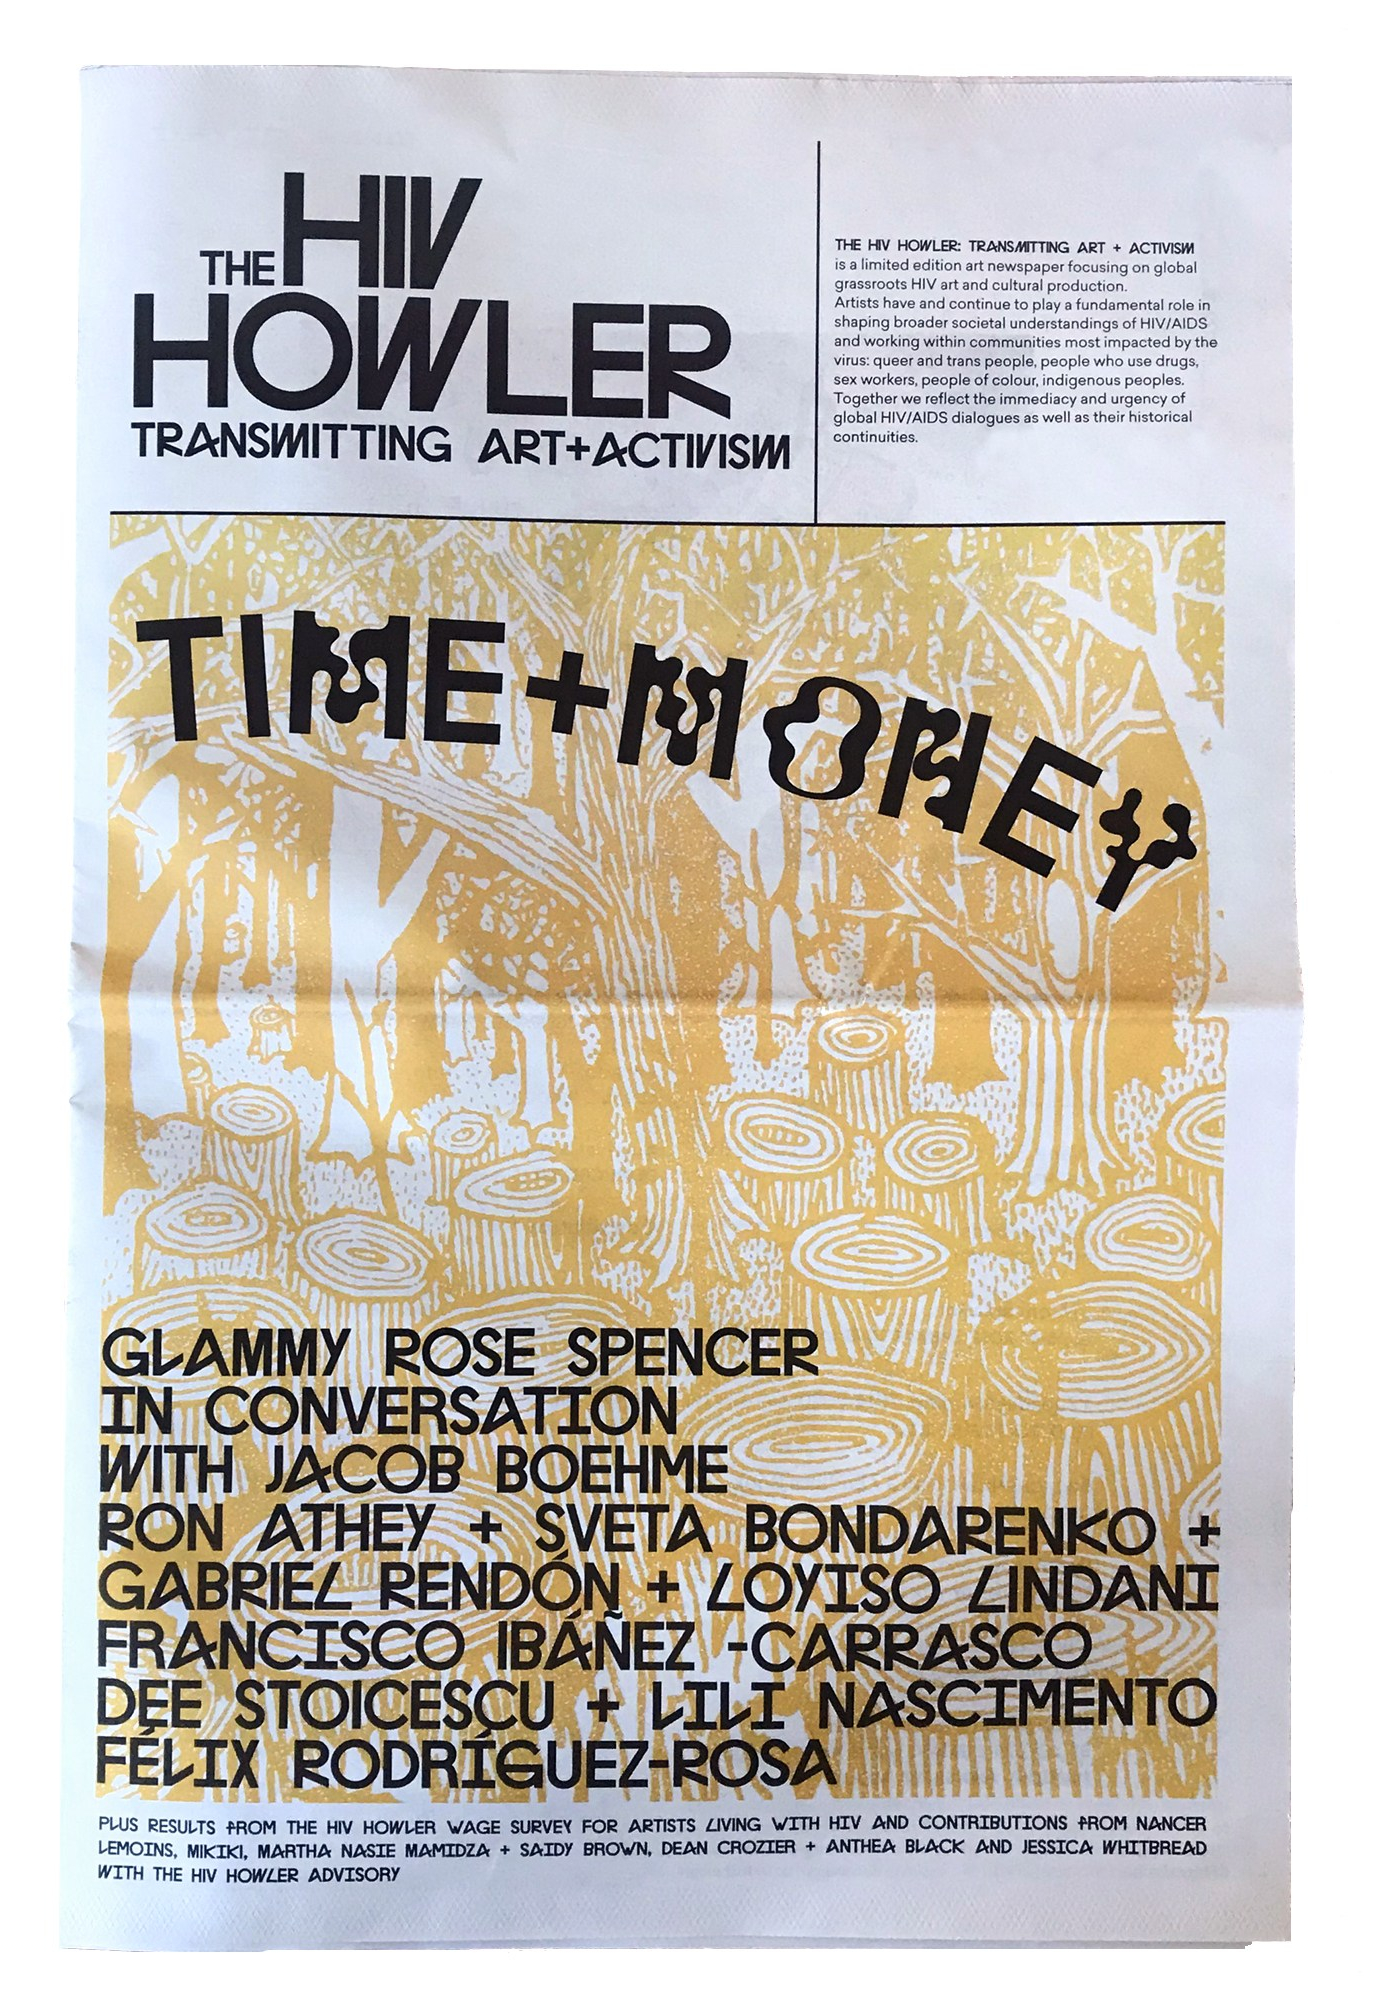 """The front page of the artist newspaper """"The HIV Howler: Transmitting Art and Activism"""" with the title """"TIME+MONEY"""" and a yellow monotone image of a drawing of a forest, by Glammy Rose Spencer. Contributors names are listed on the bottom half page of the cover: Glammy Rose Spencer in conversation with Jacob Boehme, Ron Athey, Sveta Bondarenko, Gabriel Rendon, Loyiso Lindani, Francisco Ibanez-Carrasco, Dee Stoicescu, Lili Nascimento and Felix Rodriguez-Rosa, Plus results from the HIV Howler wage survey for Artists Living with HIV, and contributions from Nancer Lemoins, Mikiki, Martha Nasie Mamidza and Saidy Brown, Dean Croizer, and Anthea Black and Jessica Whitbread with the HIV Howler Advisory."""